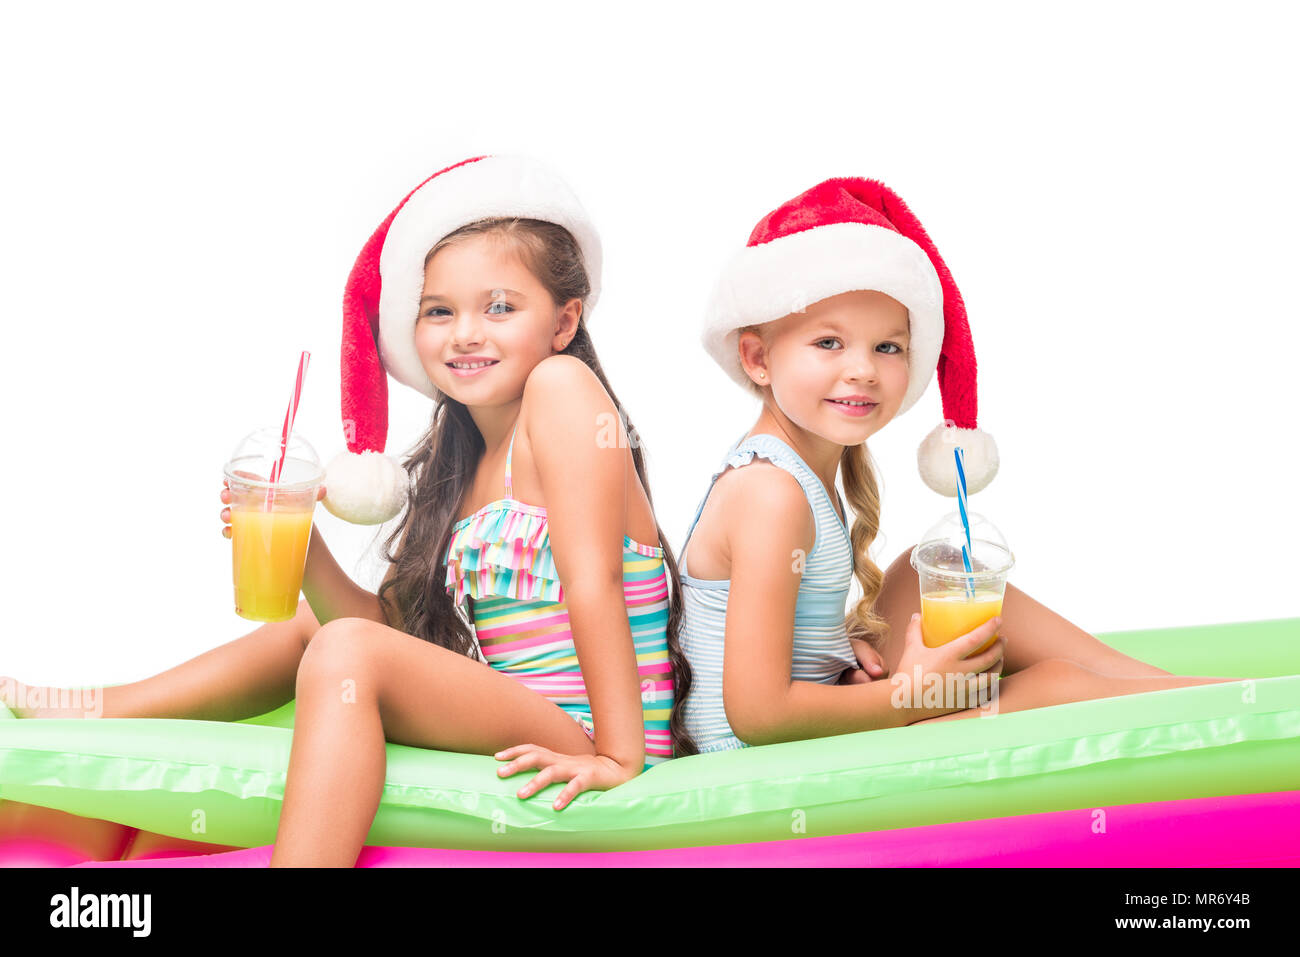 d65e812609896 adorable little girls in santa hats drinking orange juice while sitting on  swimming mattresses - Stock